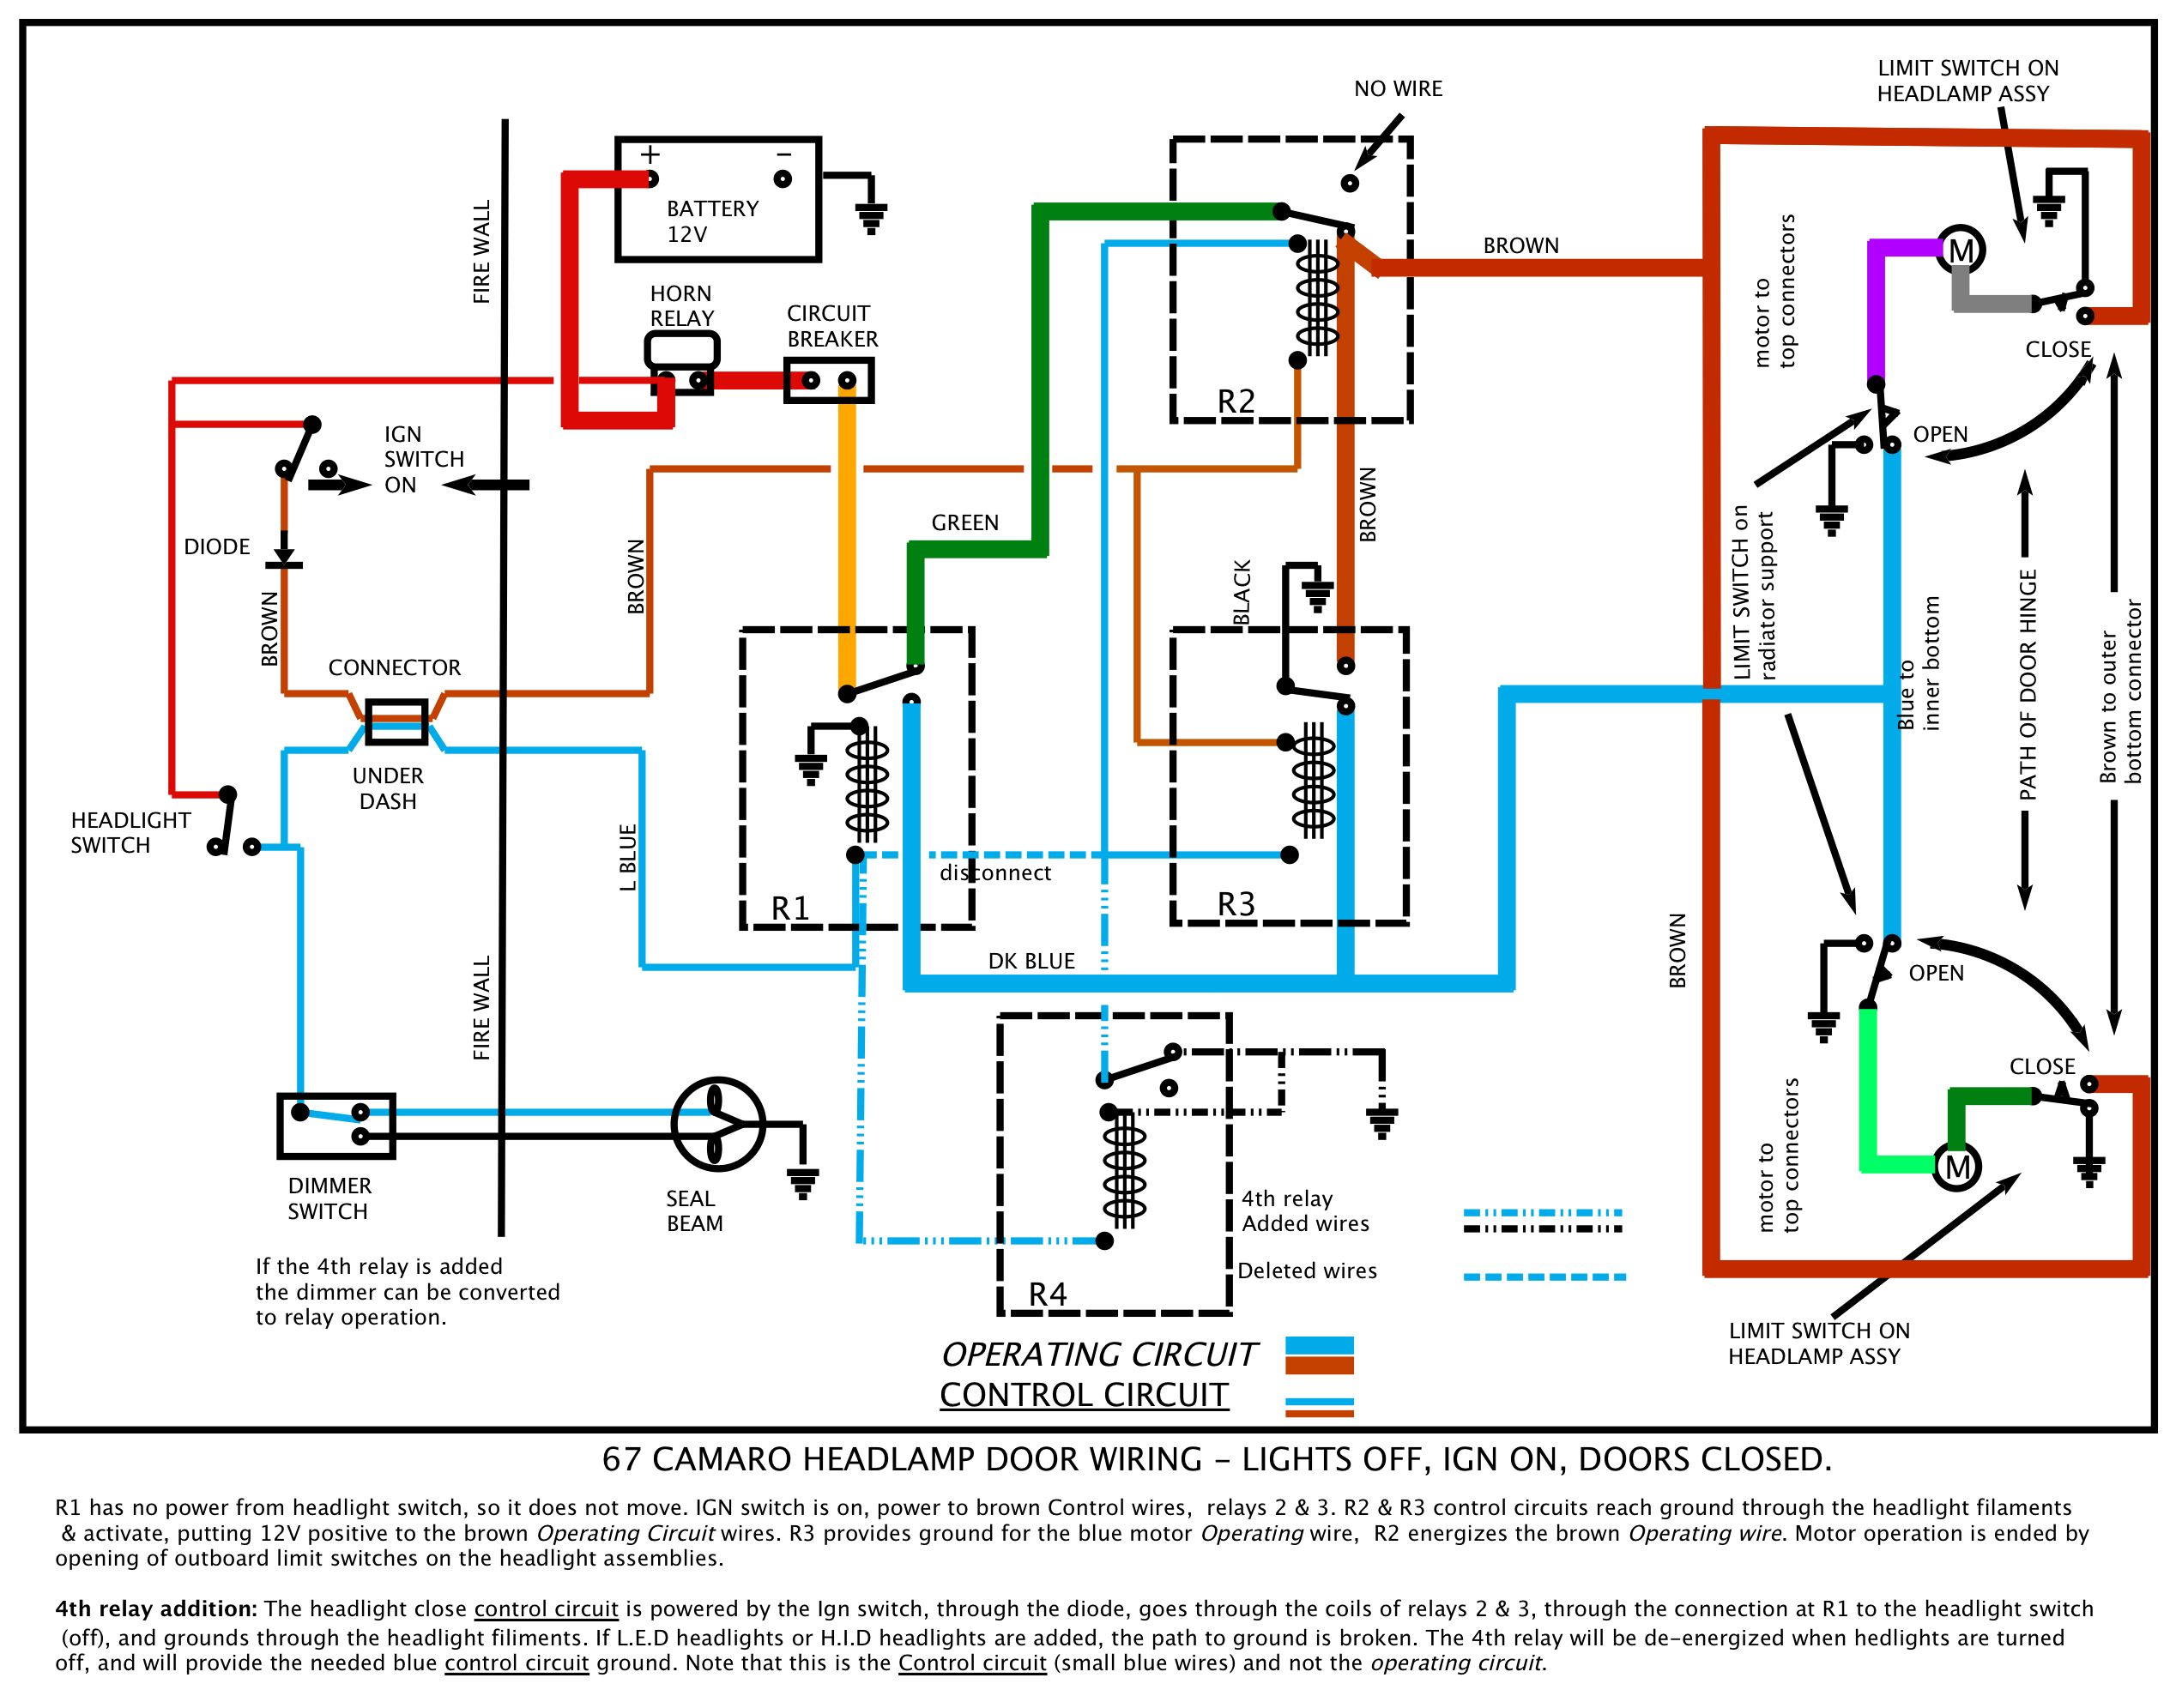 1972 Chevelle Speaker Wiring Diagram Schematic Great Design Of 67 Wiper Motor Rs Headlight Doors 1967 Harness